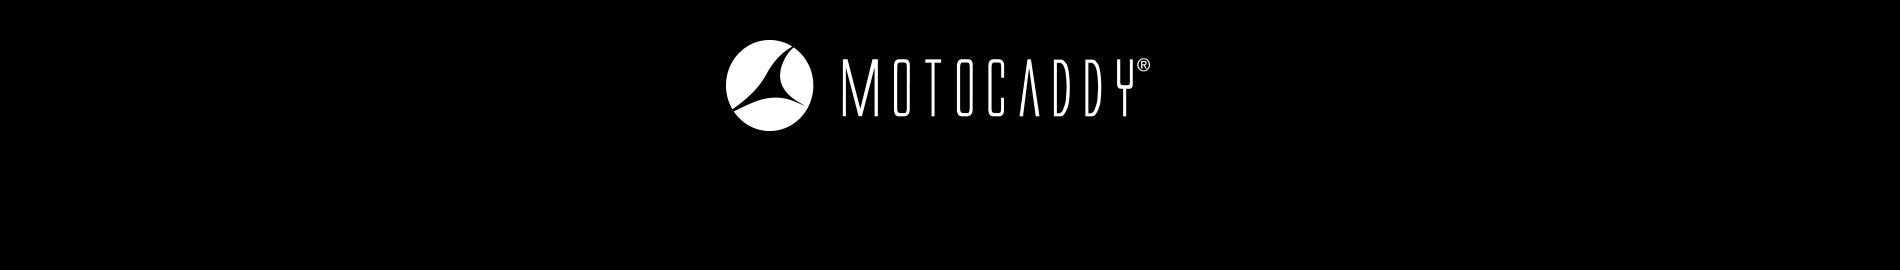 Motocaddy Footer